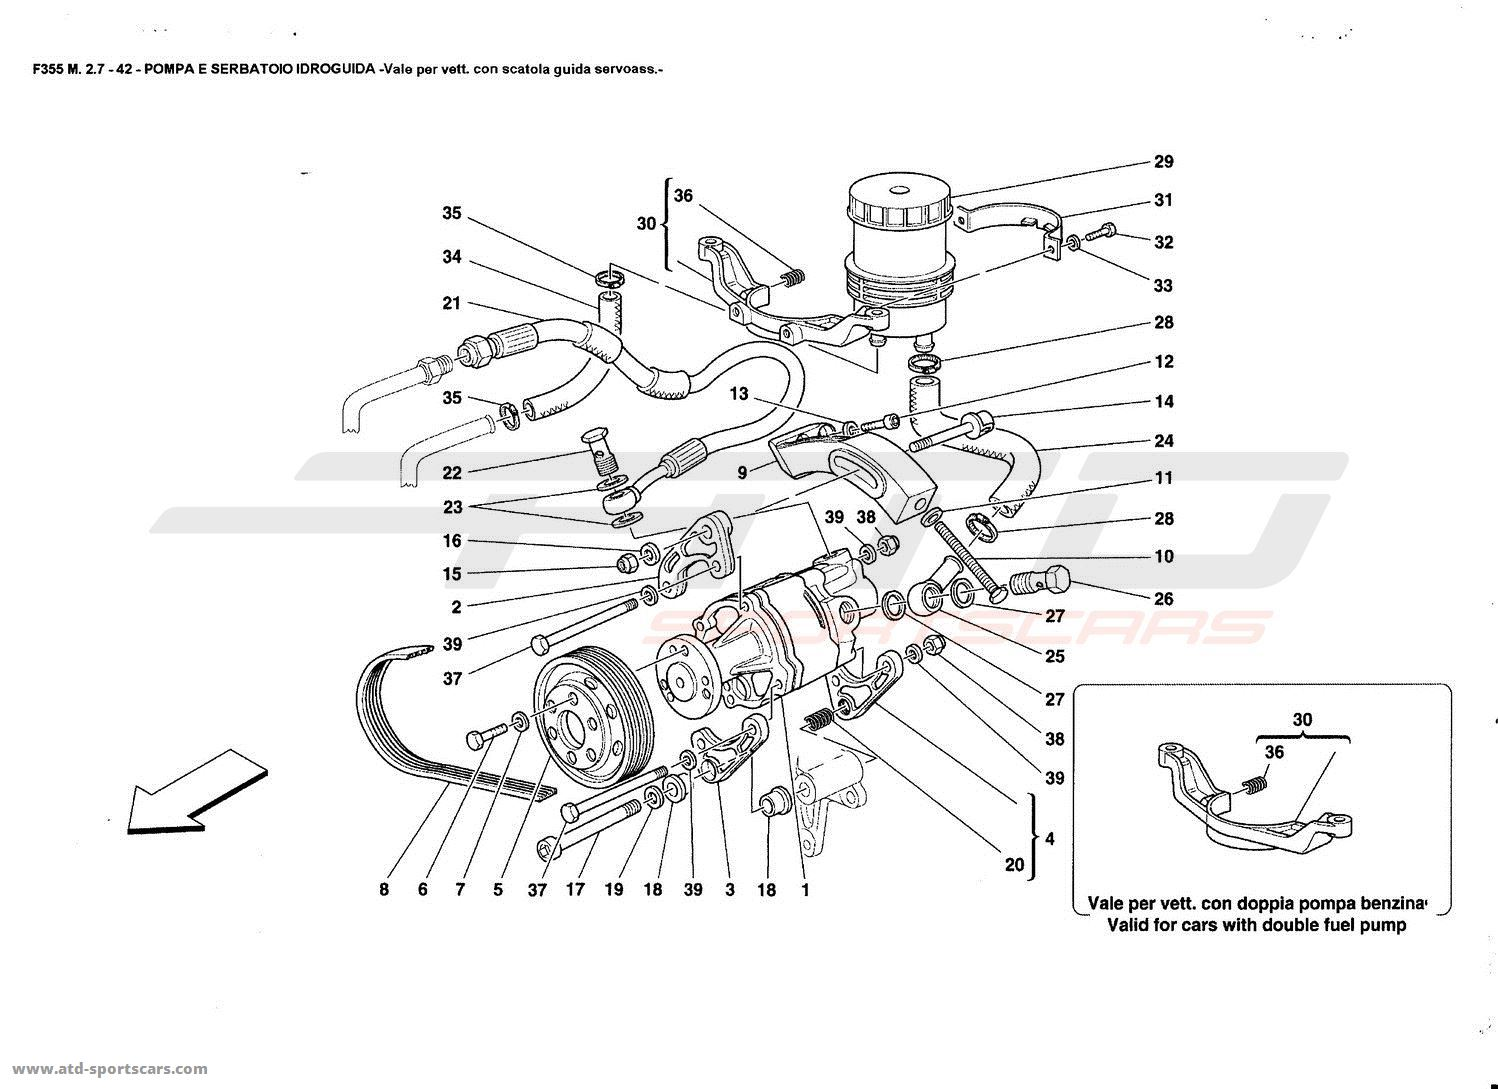 Ferrari F355 2 7 Undercarriage Parts At Atd Sportscars